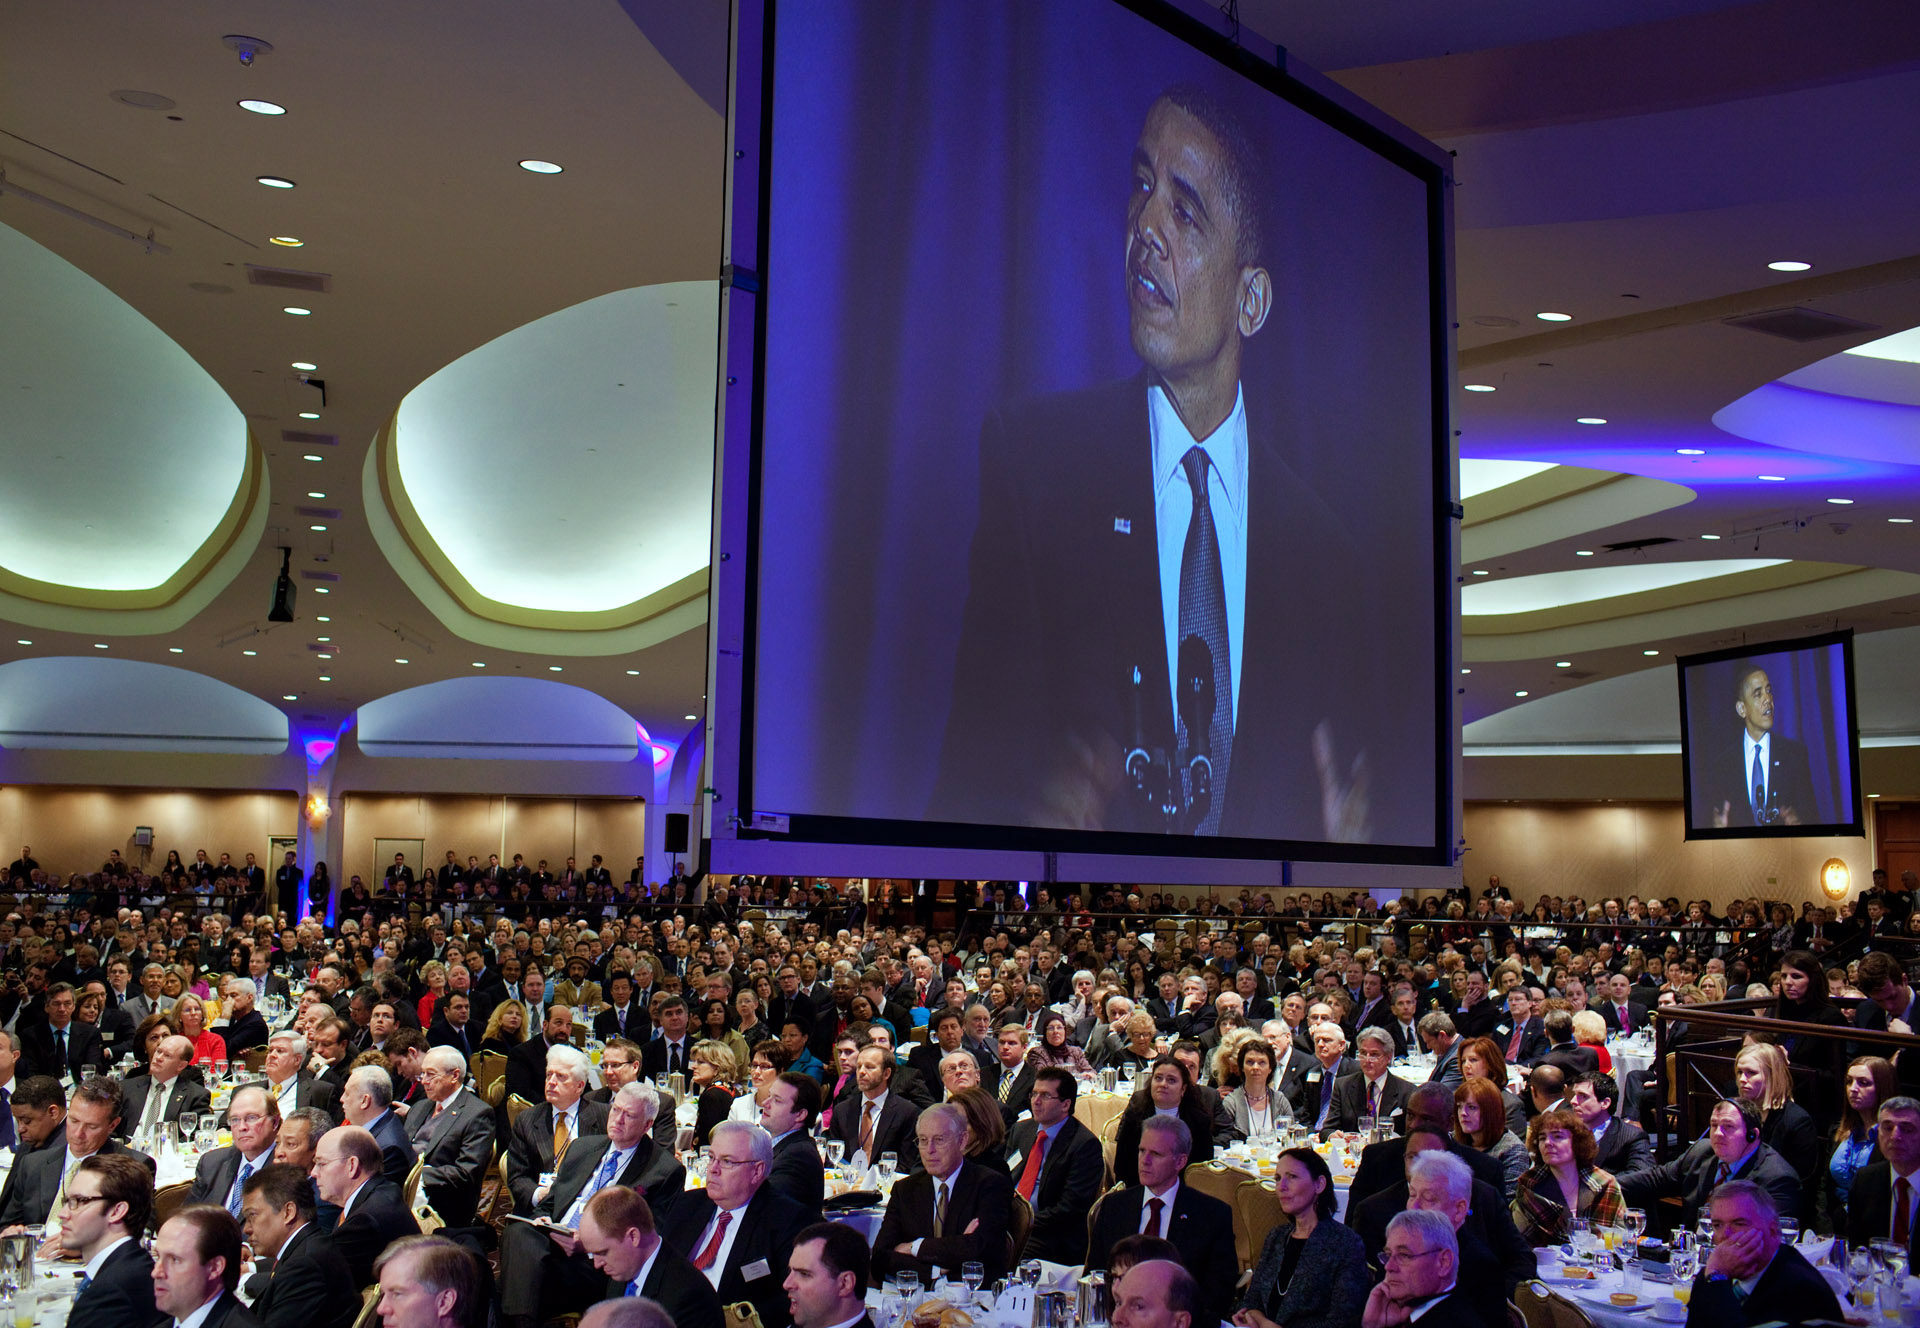 Television Shows President Obama at the National Prayer Breakfast